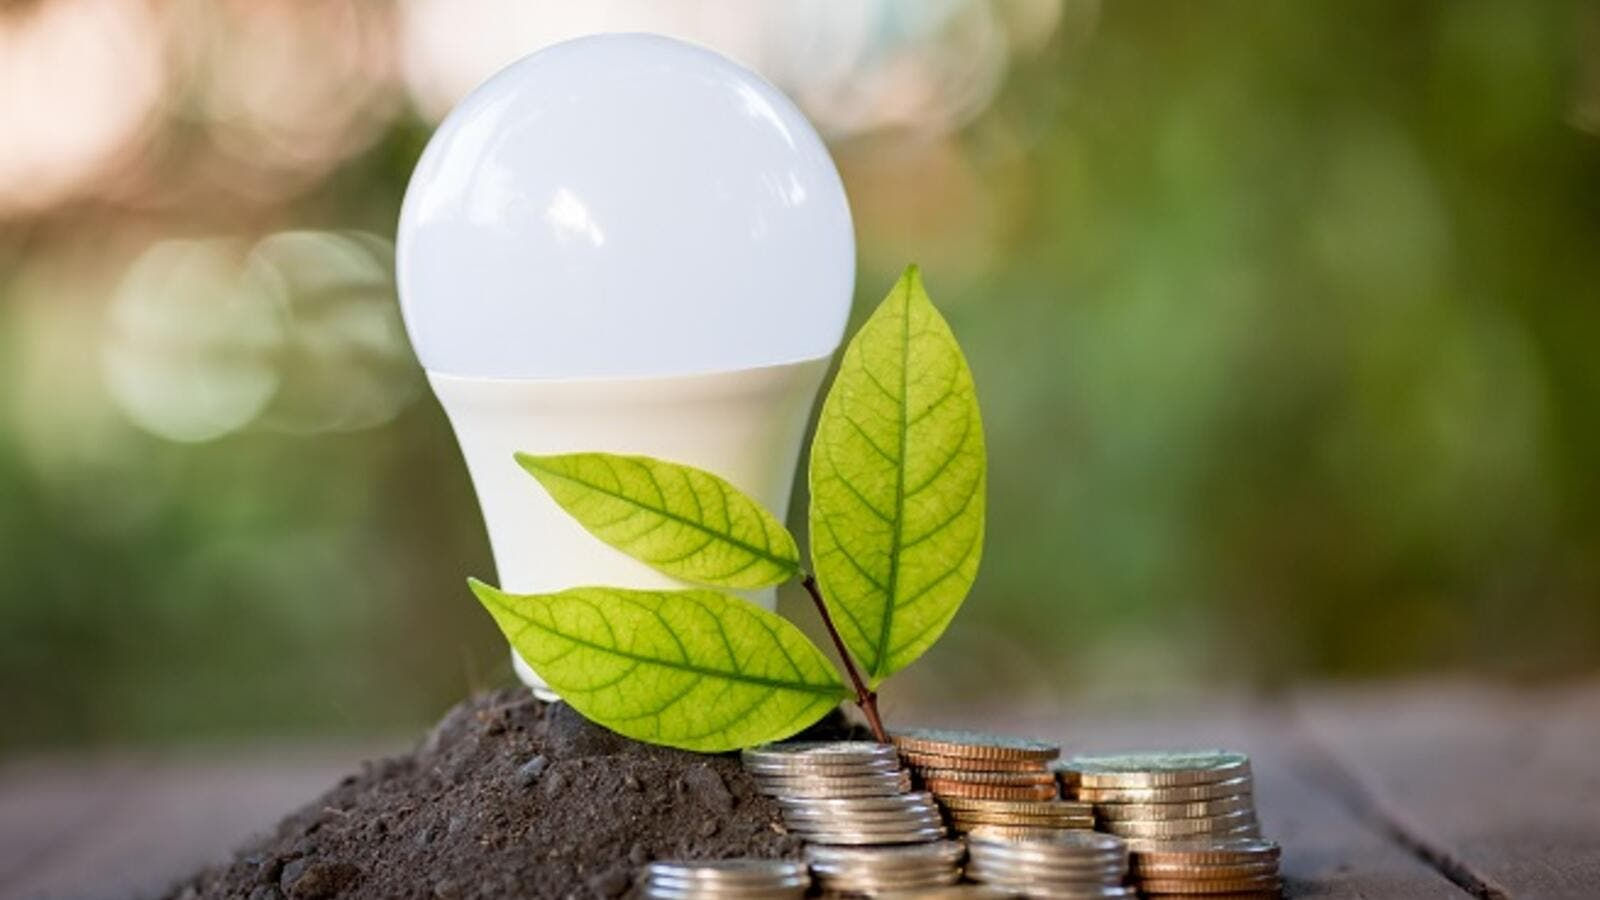 The UAE is working to create a more sustainable and energy-efficient country, but the success of these initiatives depends on household consumption. (Shutterstock)